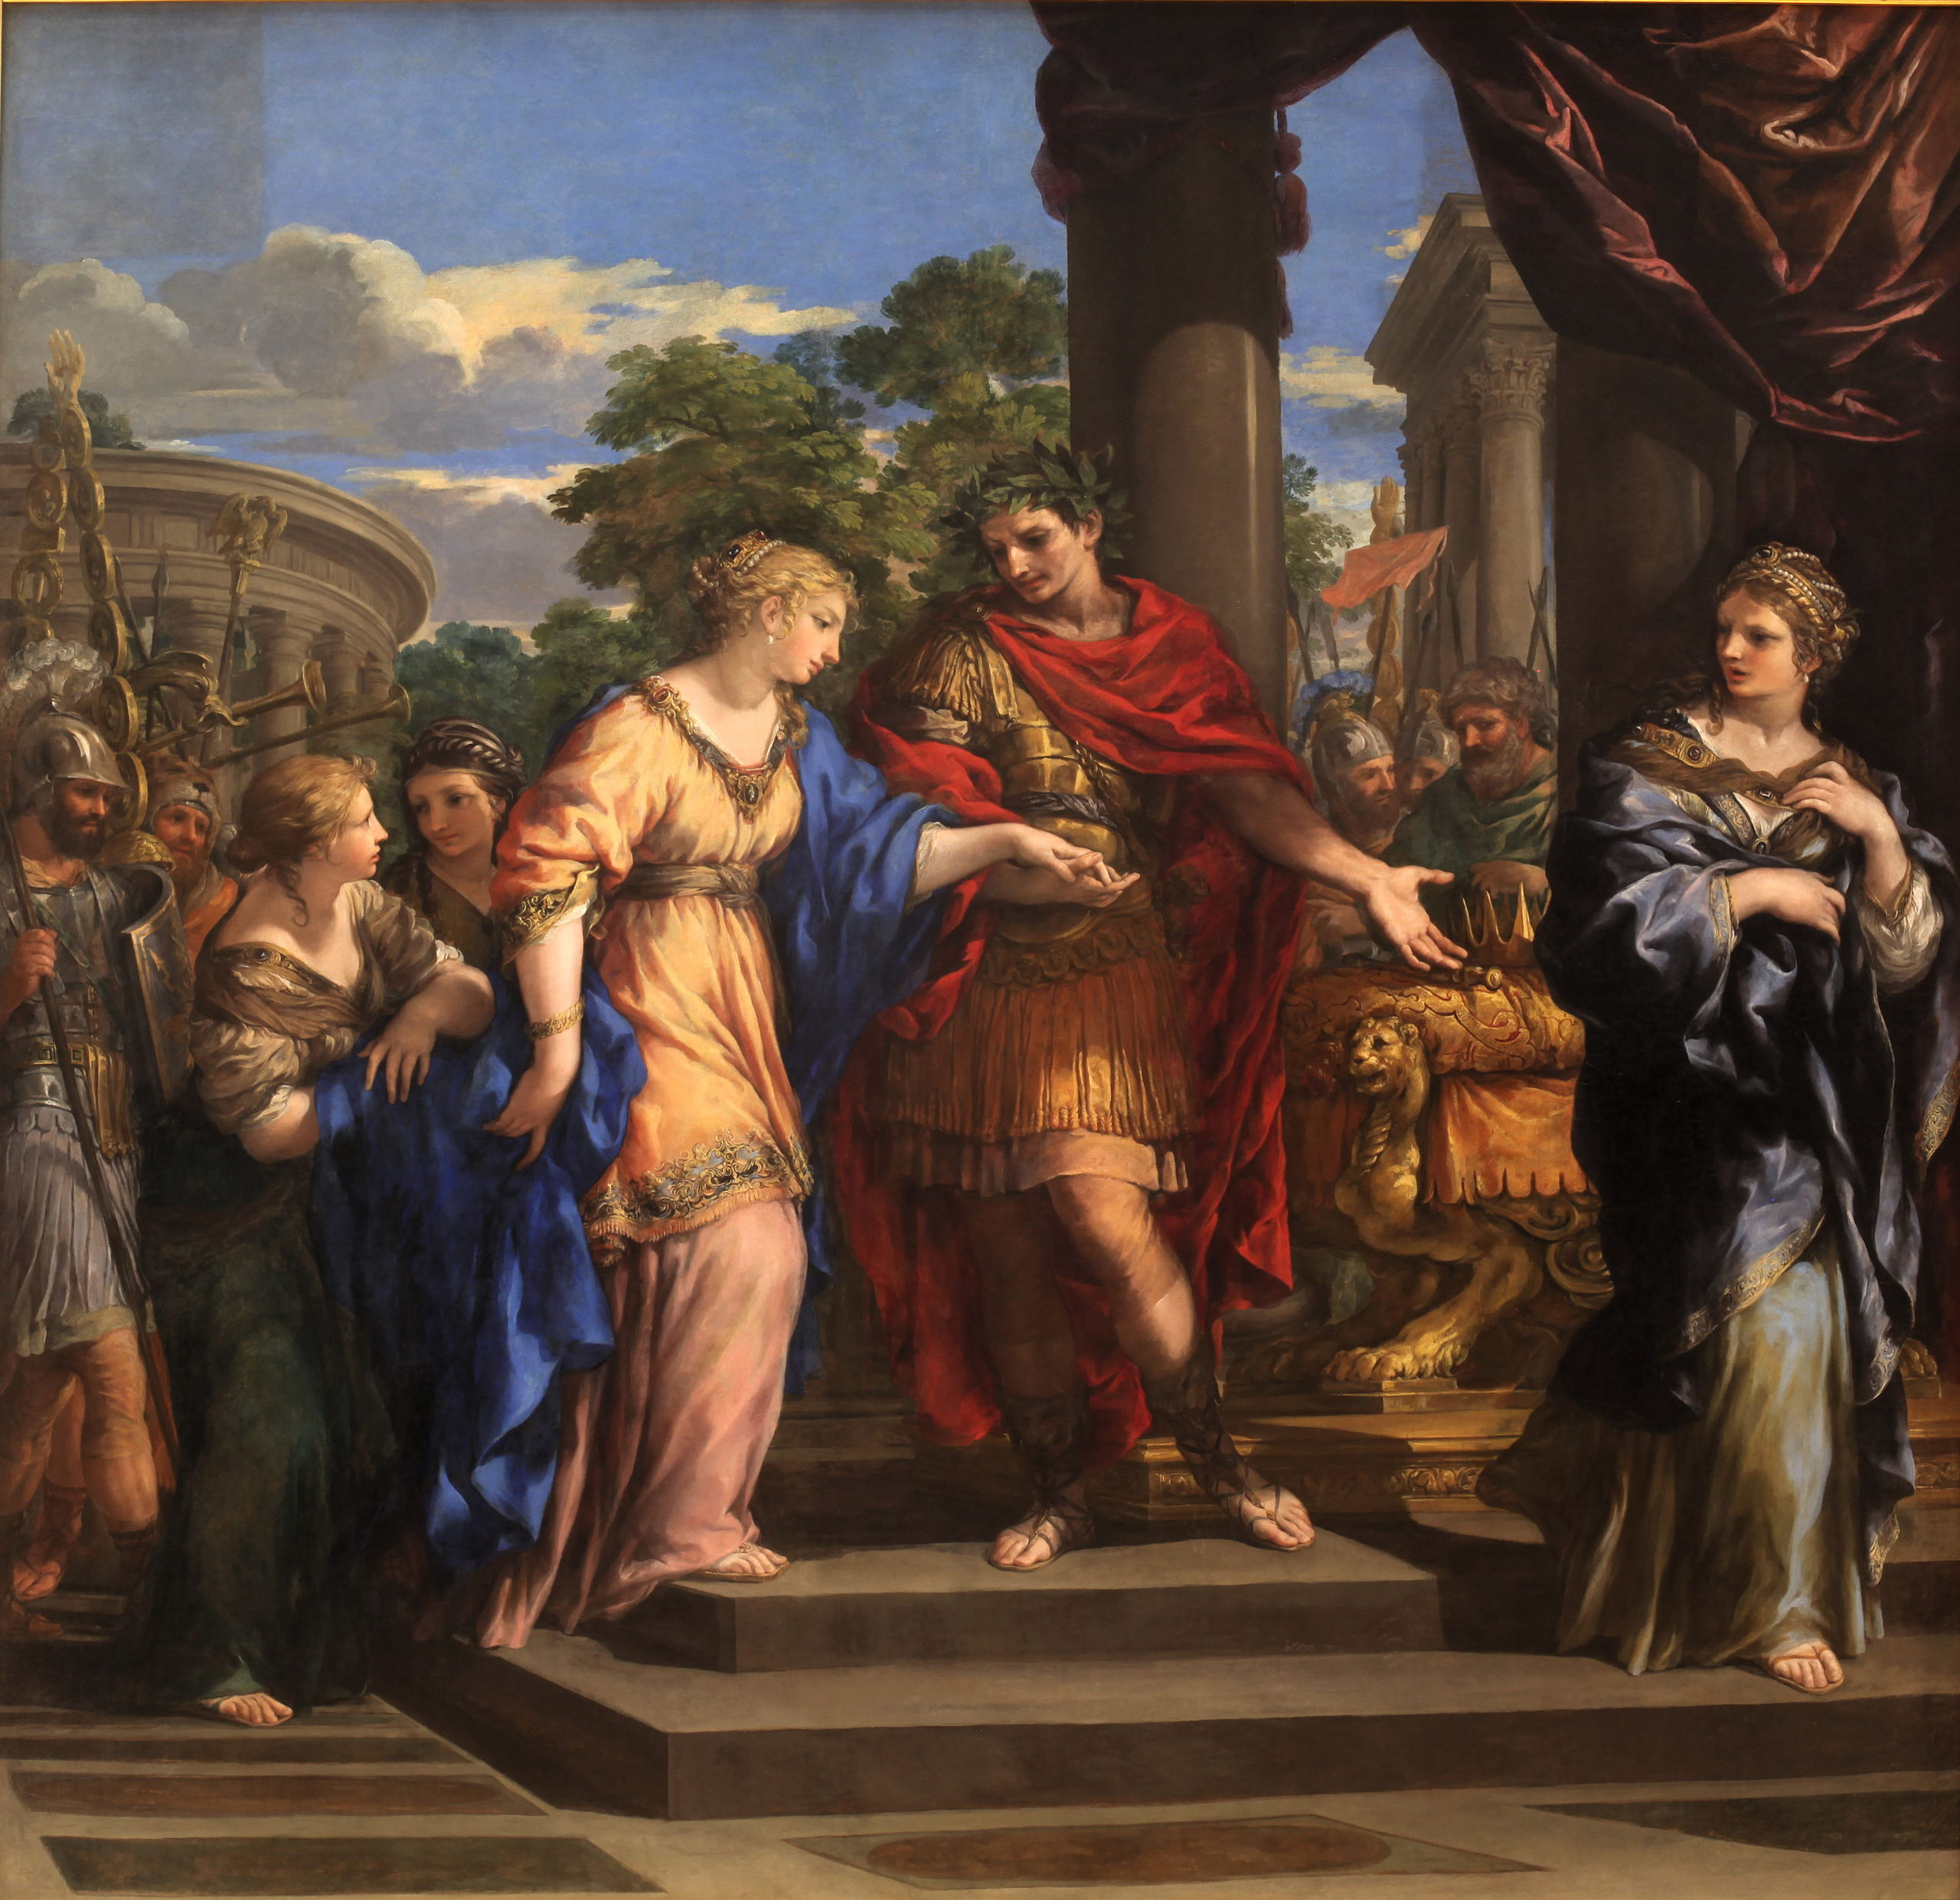 Caesar Giving Cleopatra the Throne of Egypt. By Pietro de Cortone, c. 1637. Musée des beaux-arts de Lyon